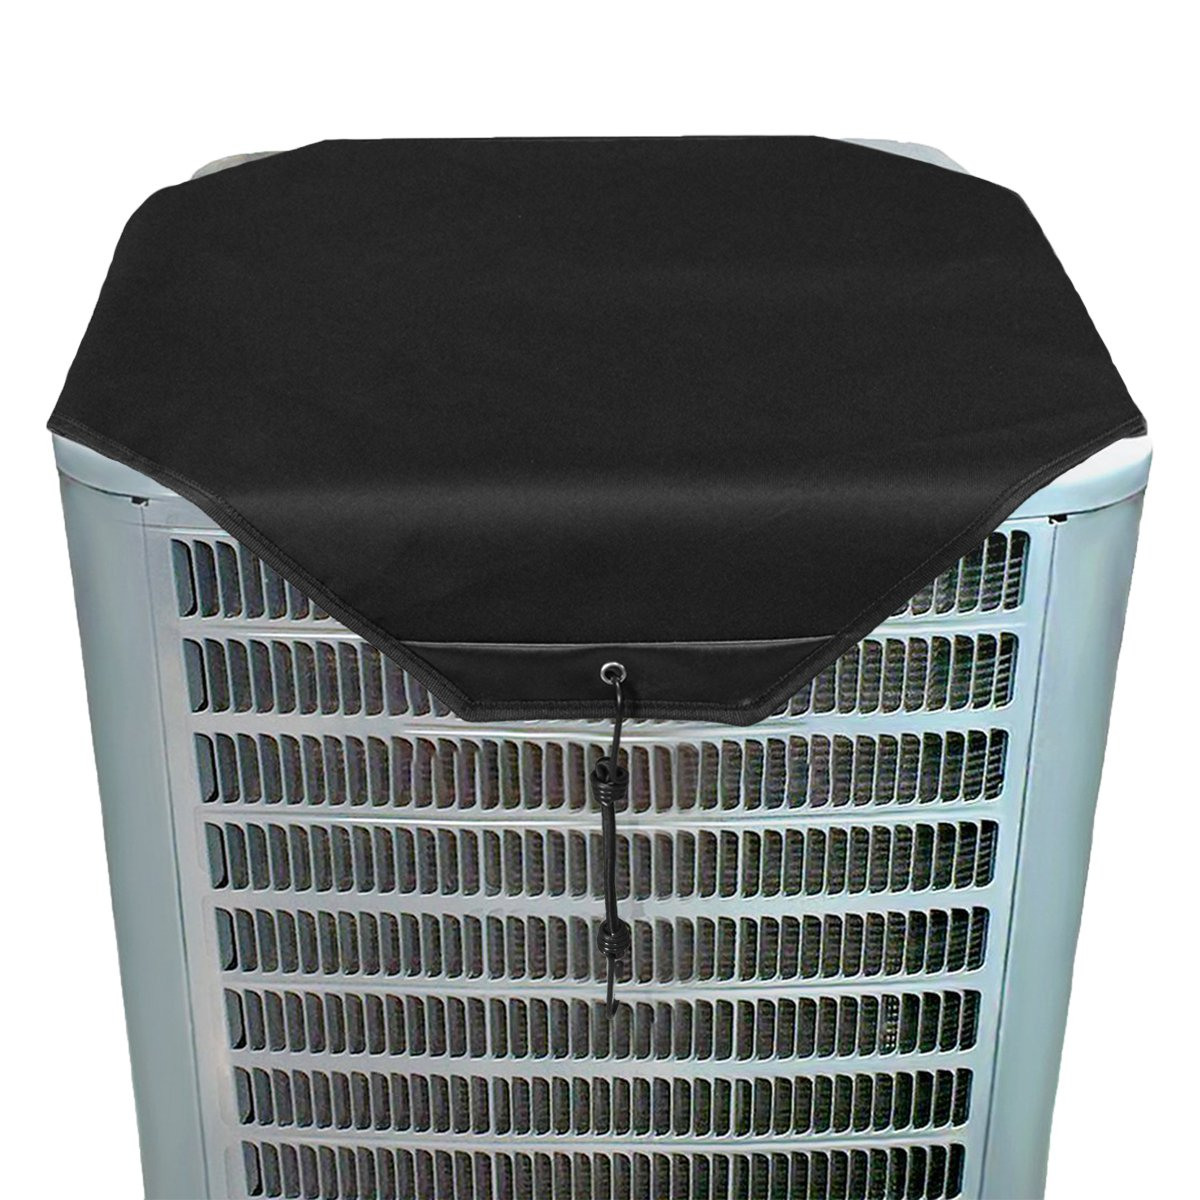 YELYEH AC Unit Cover - Conditioner Winter Waterproof Top Air Conditioner Leaf Guard Air Conditioner Cover (Black, 28X28) HAOYOUPIN